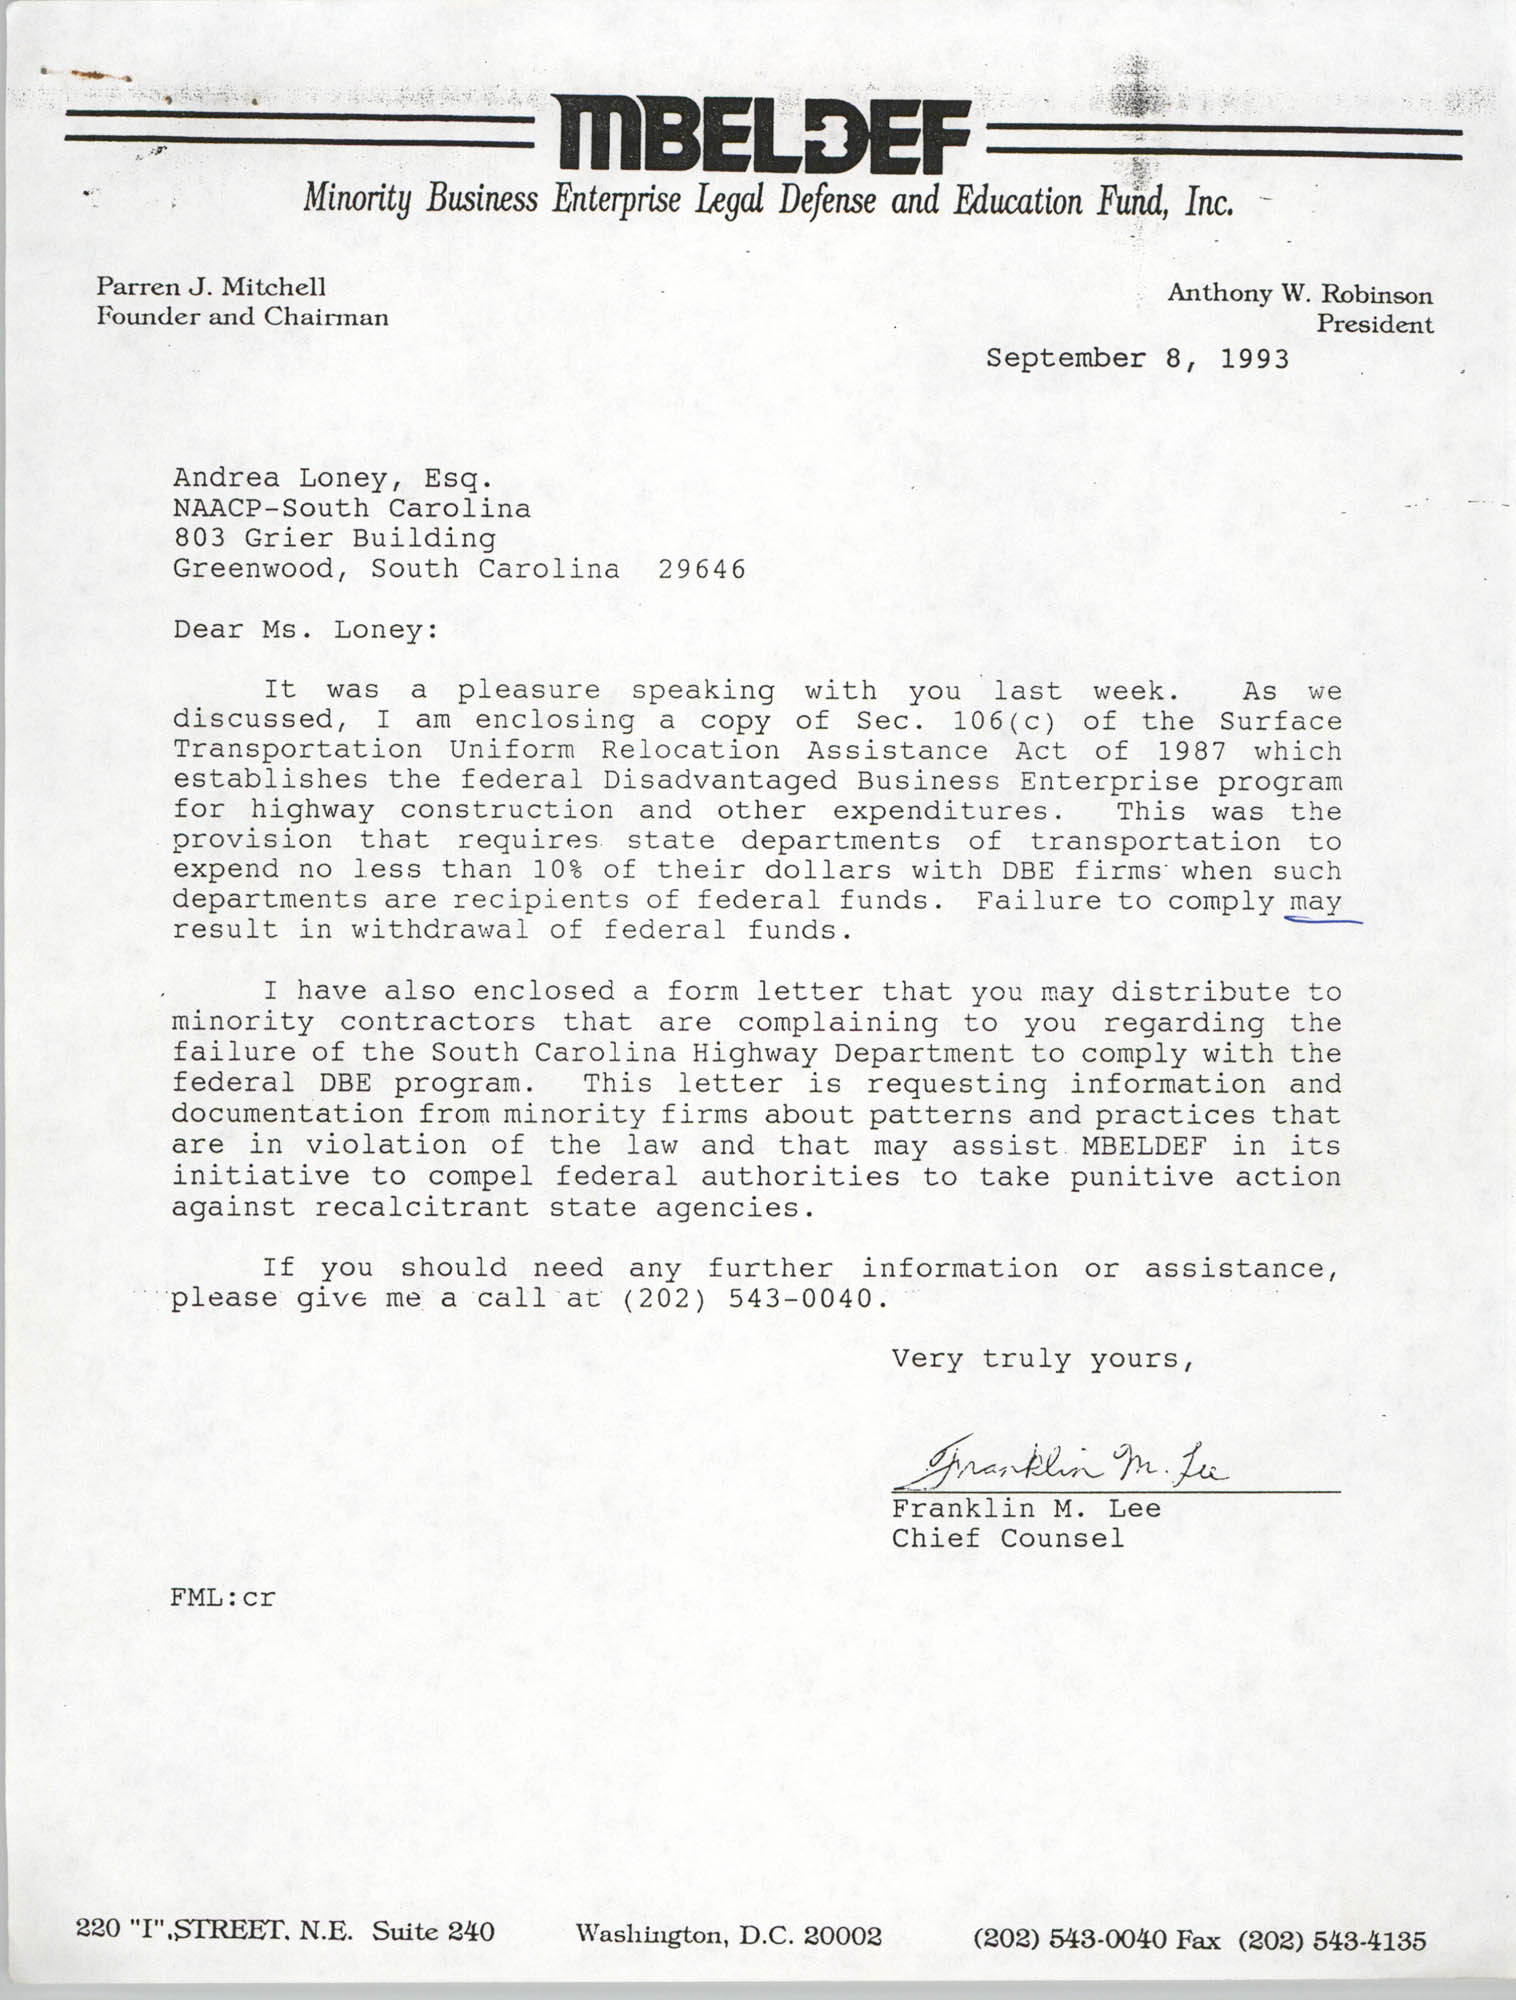 Letter from Franklin M. Lee to Andrea Loney, September 8, 1993